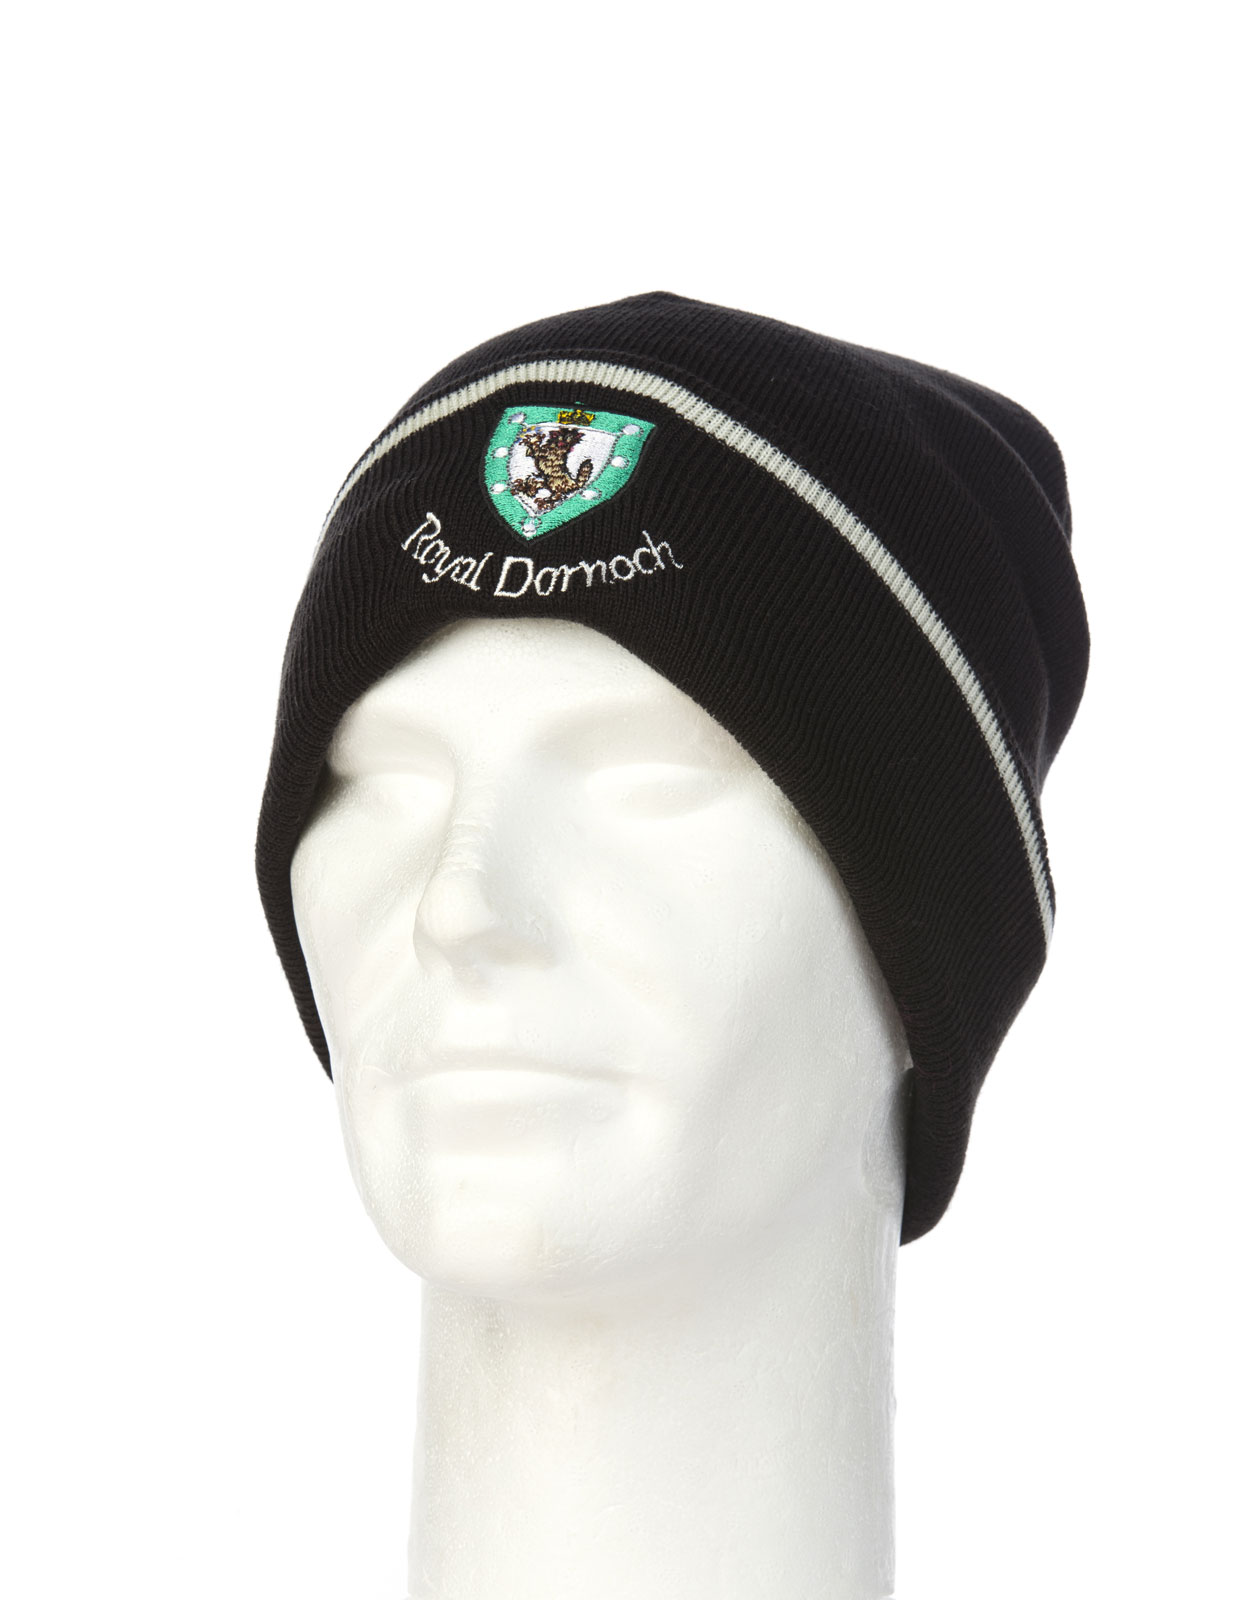 Pentland Stripe Knit Hat Royal Dornoch Pro Shop